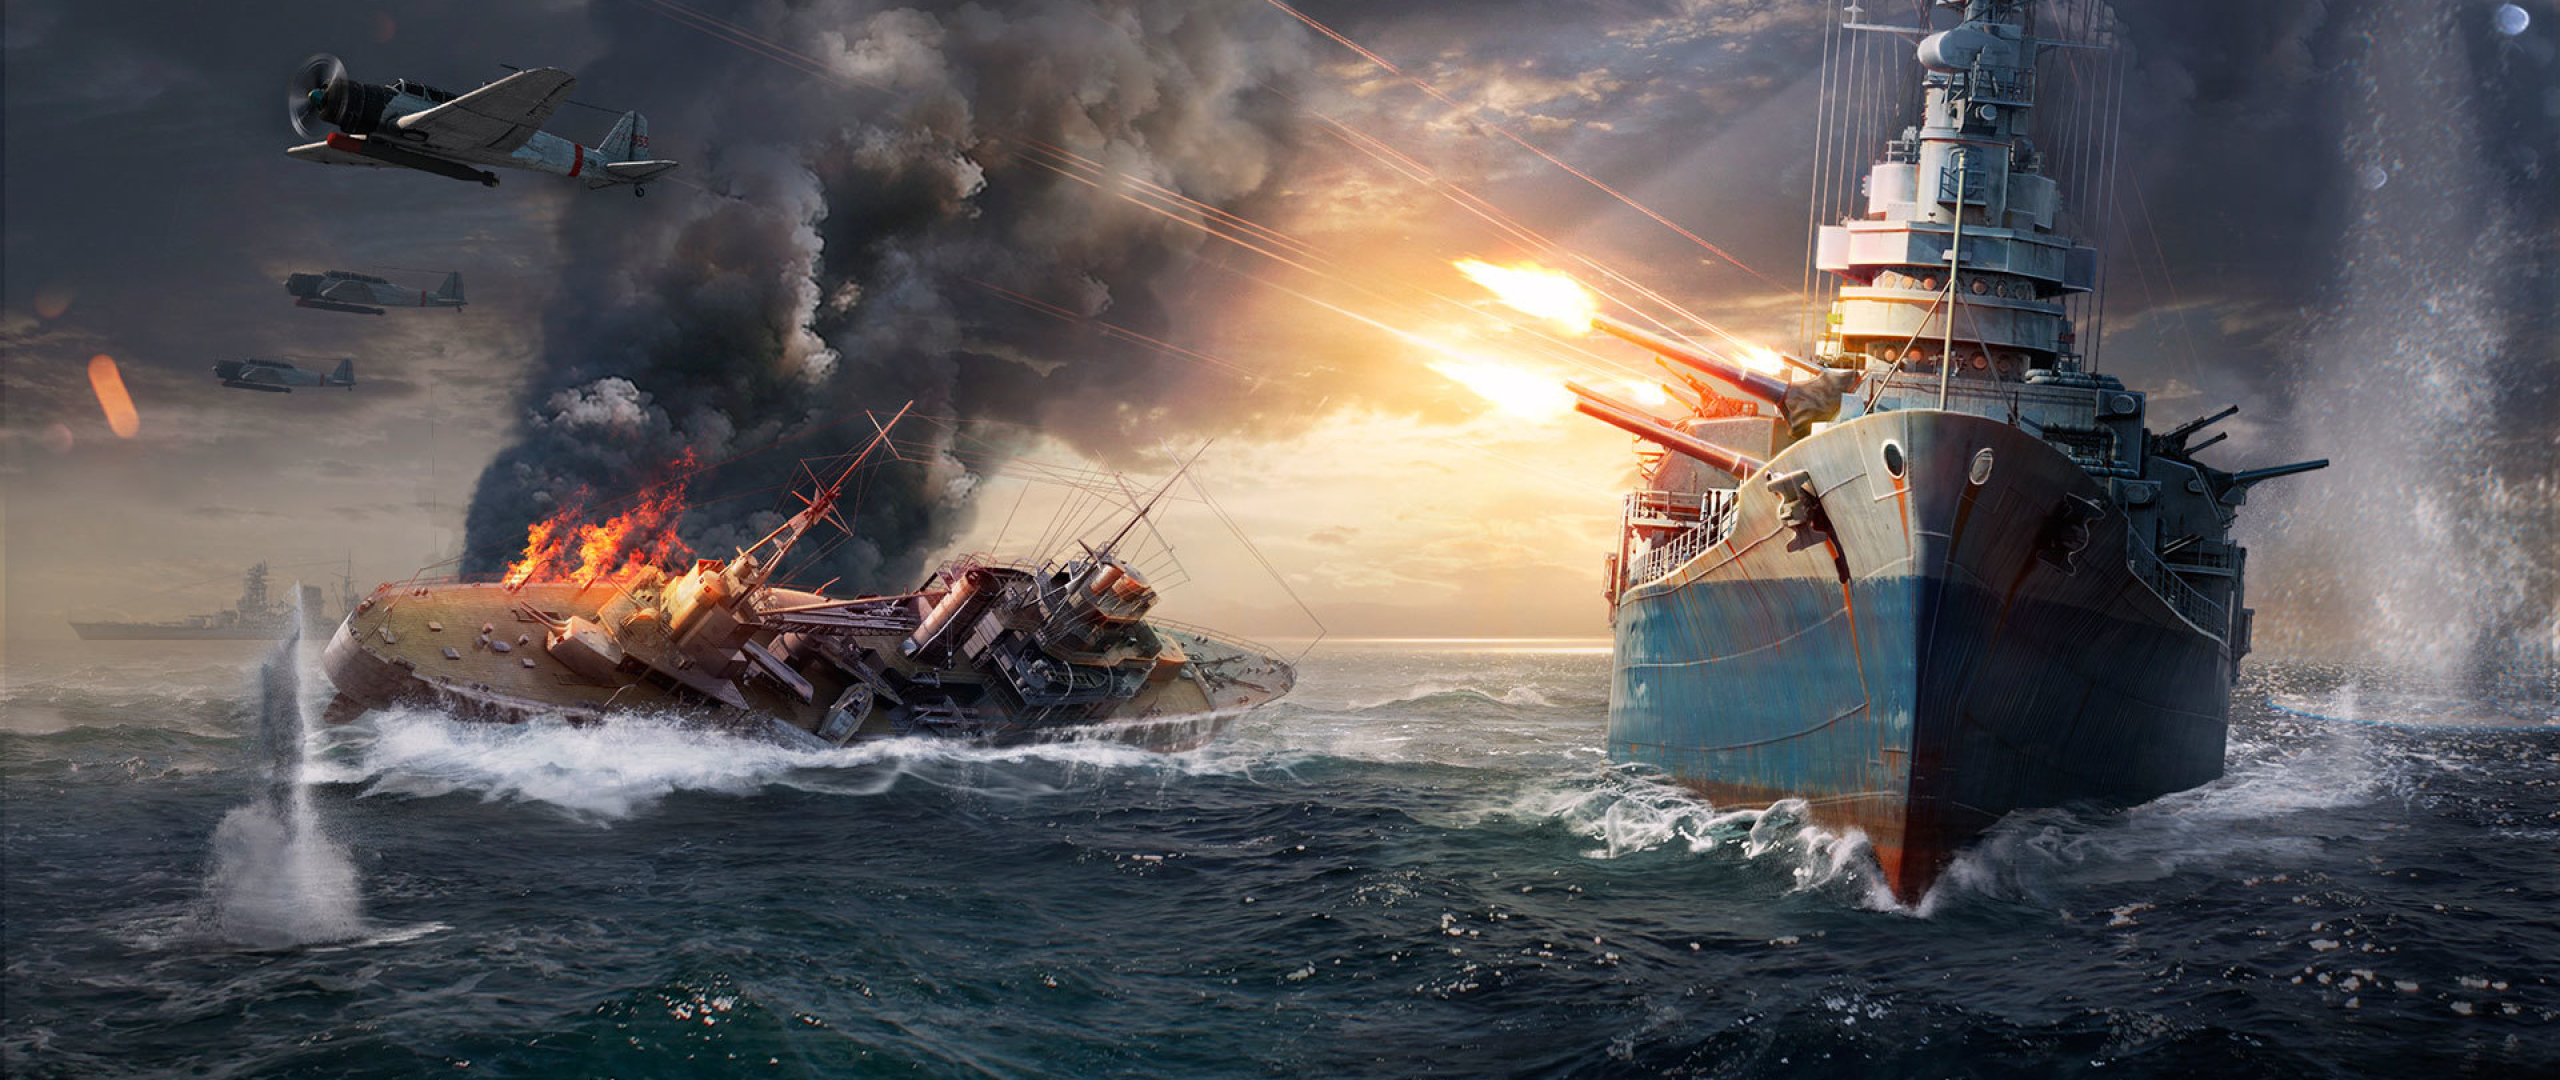 2560x1080 World Of Warships Sinking Ship 2560x1080 Resolution Wallpaper Hd Games 4k Wallpapers Images Photos And Background